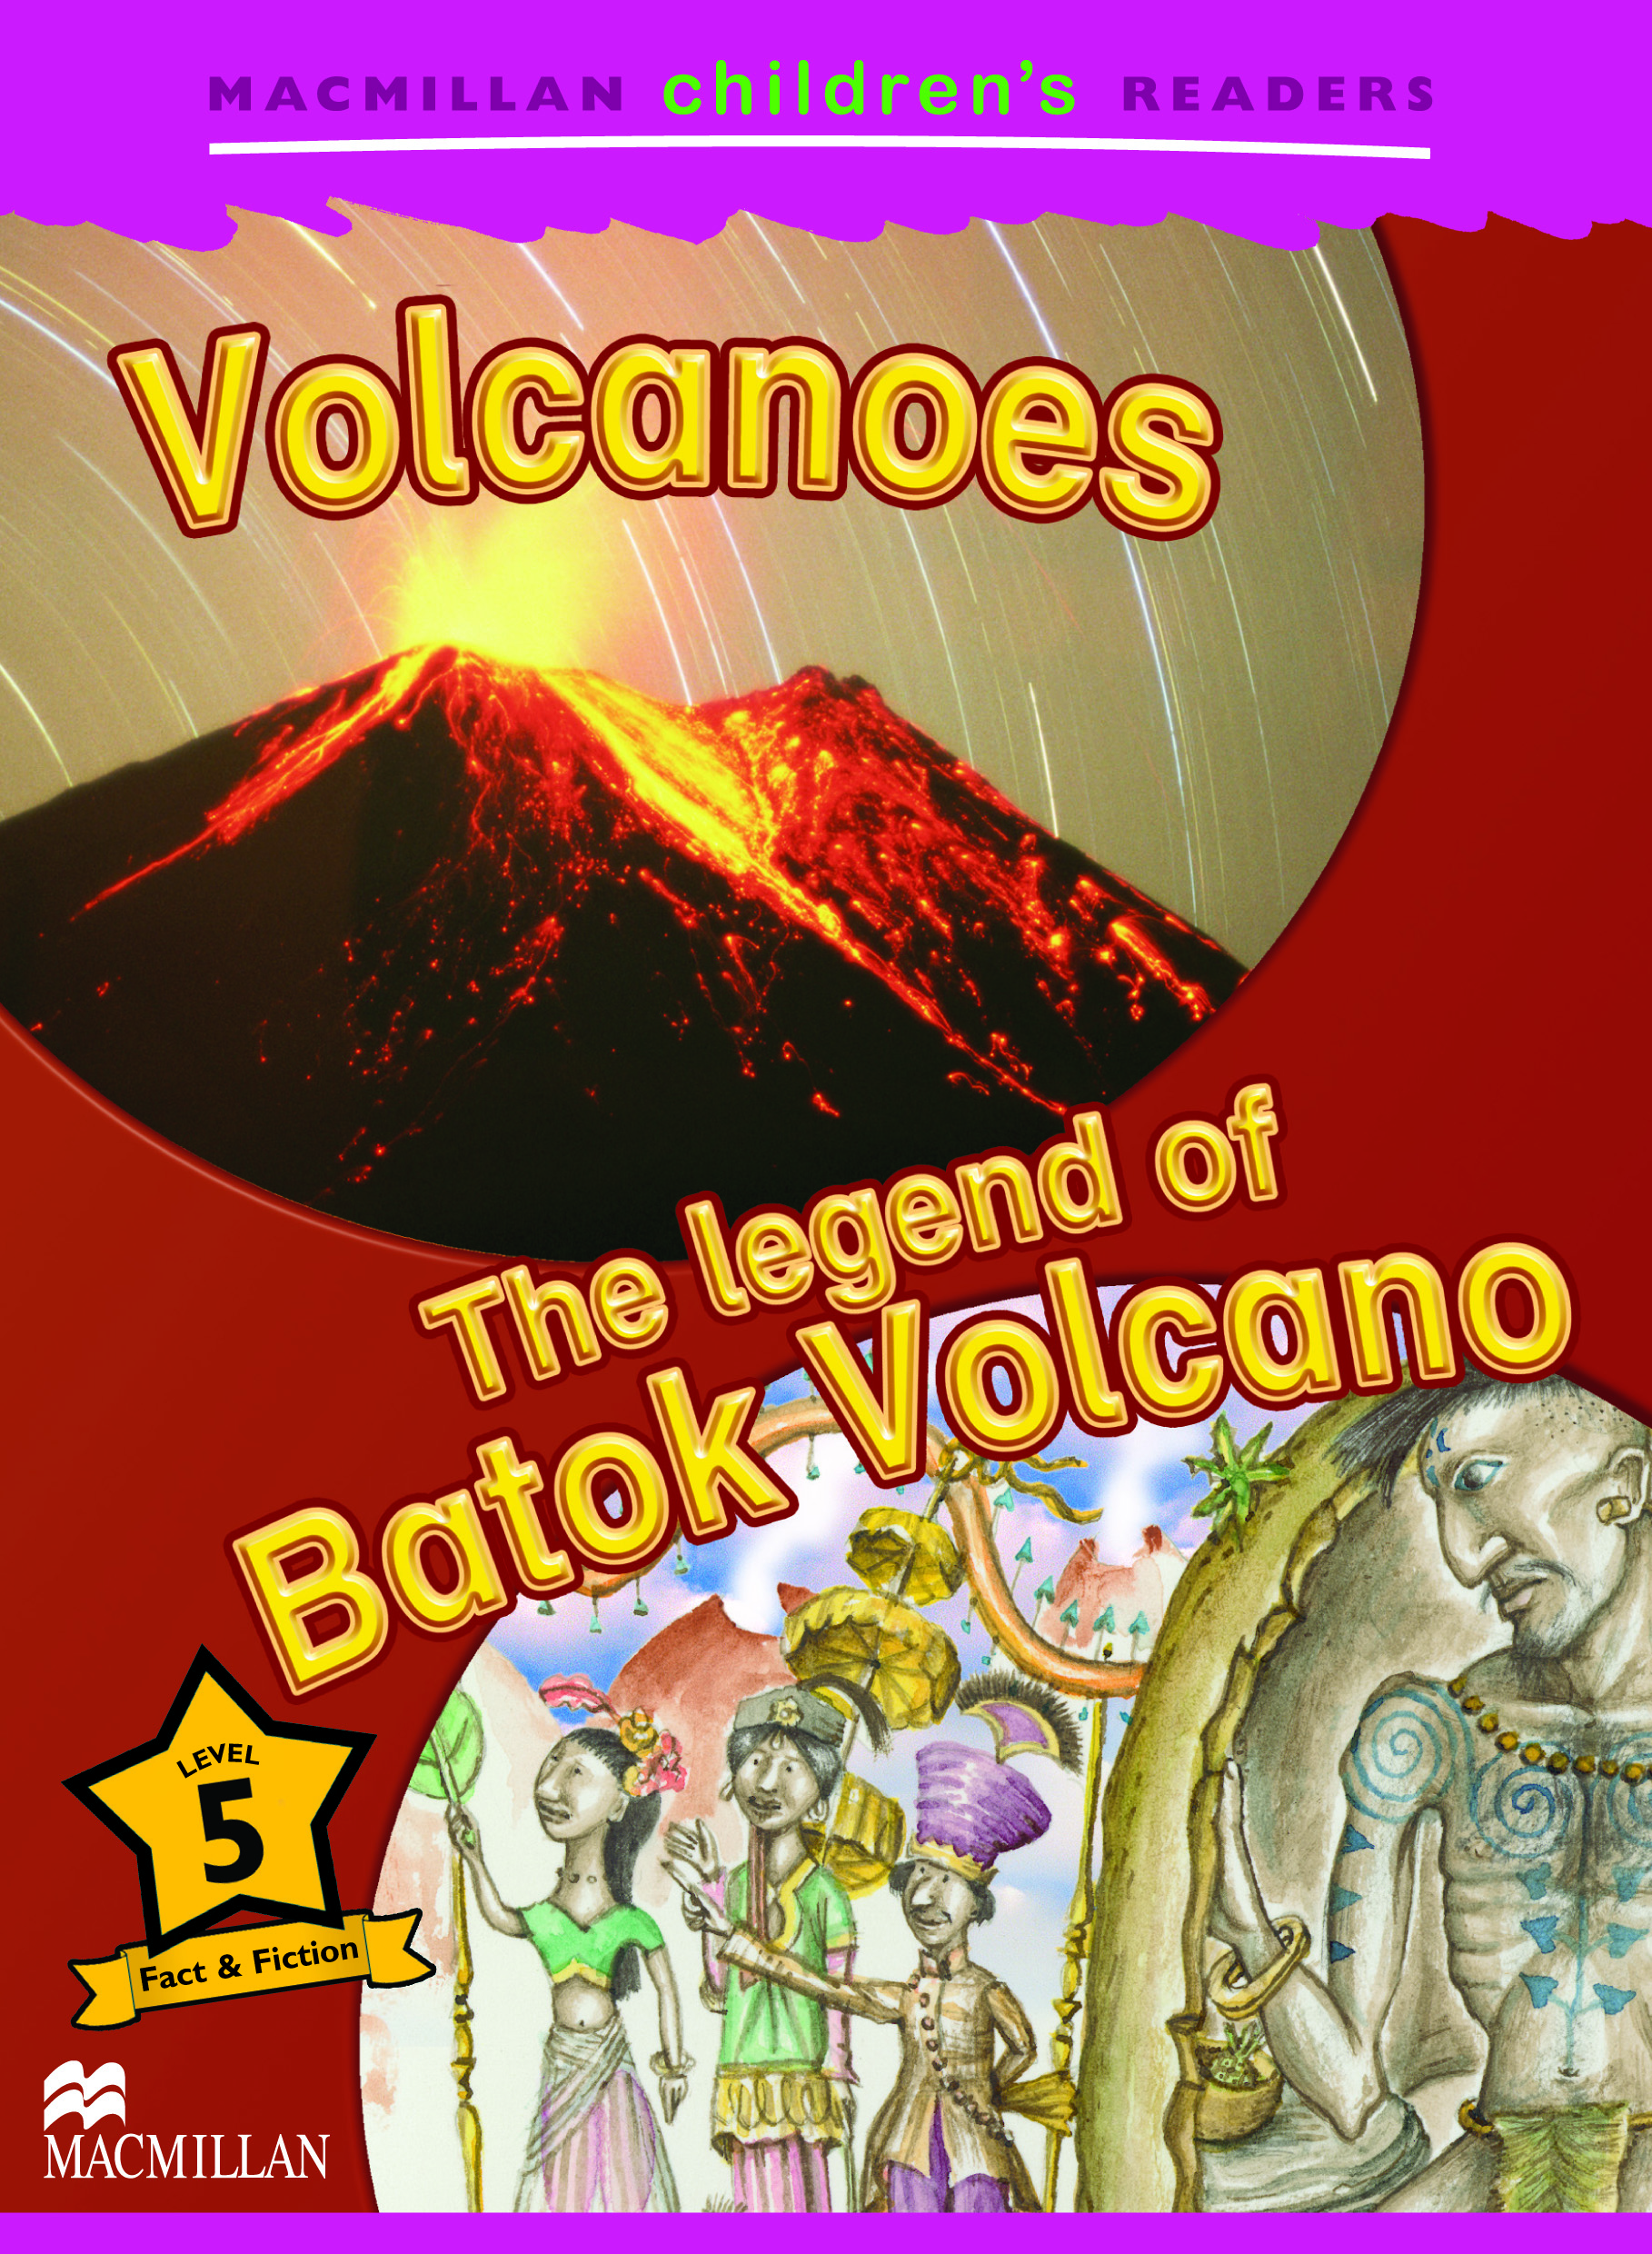 Volcanoes  / The Legend of Batok Volcano